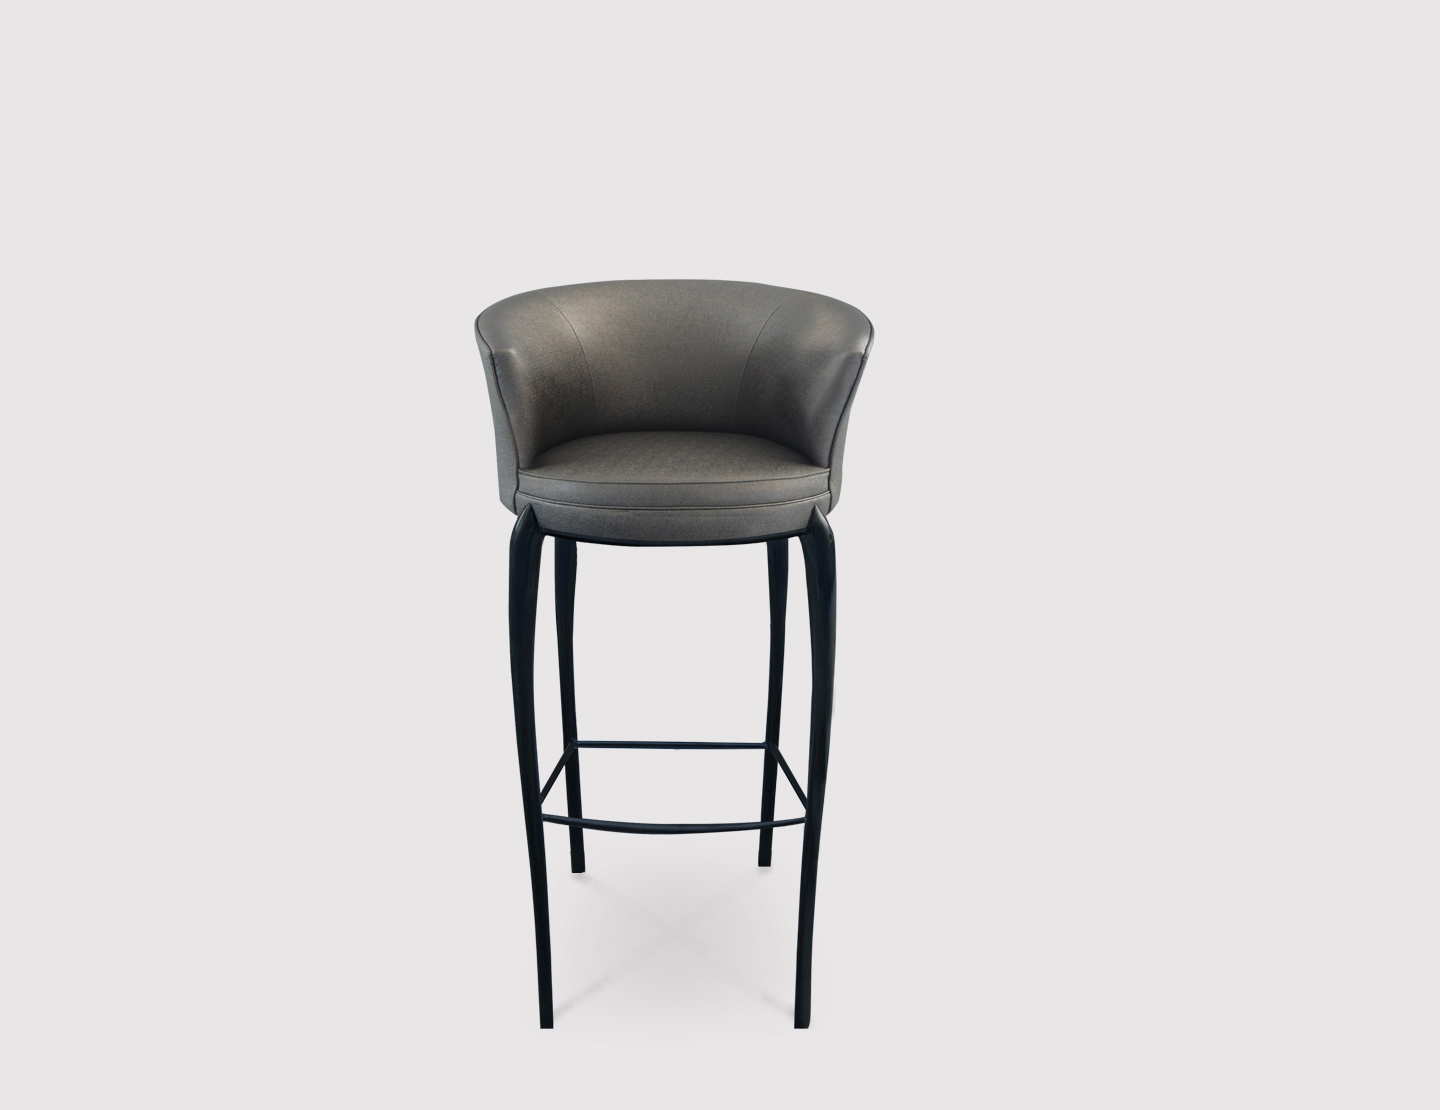 DELICE Bar Stool | Bar Stool design by Koket